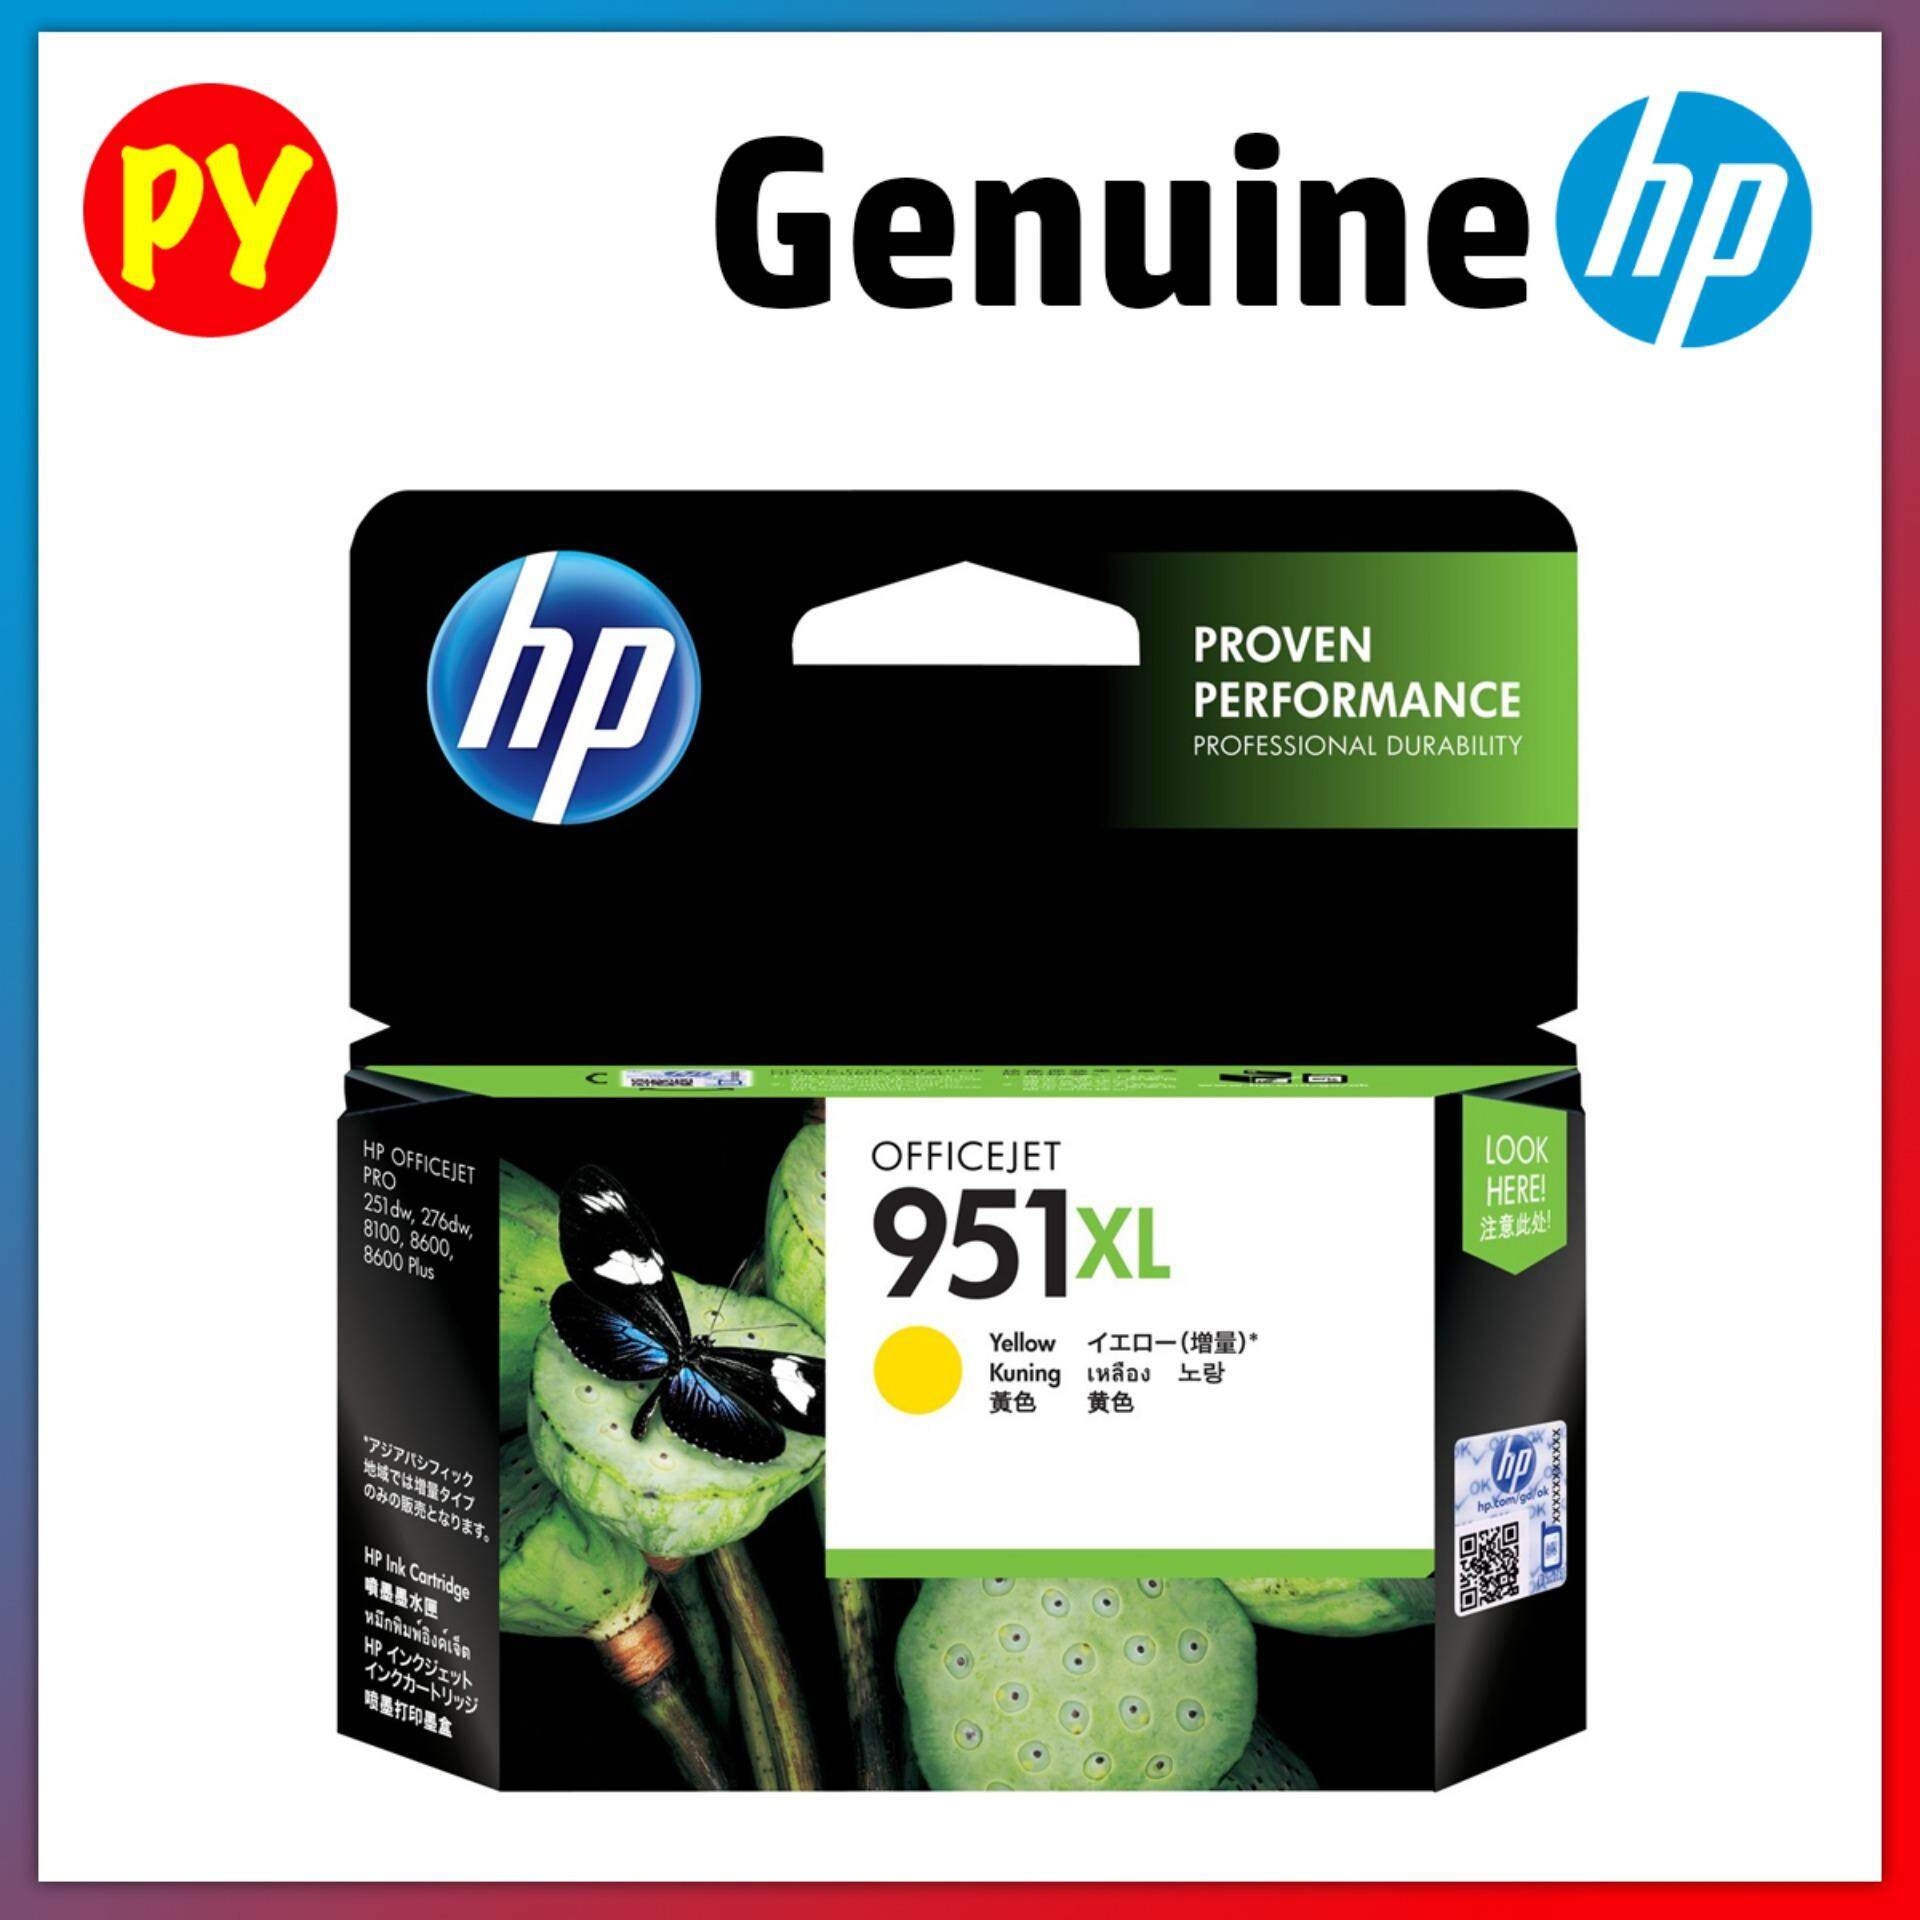 HP 950 / 950XL /951 XL Original Ink Cartridge (Black, High Yield, Cyan, Magenta, Yellow) - CN049AA CN045AA CN046AA CN047AA CN048AA